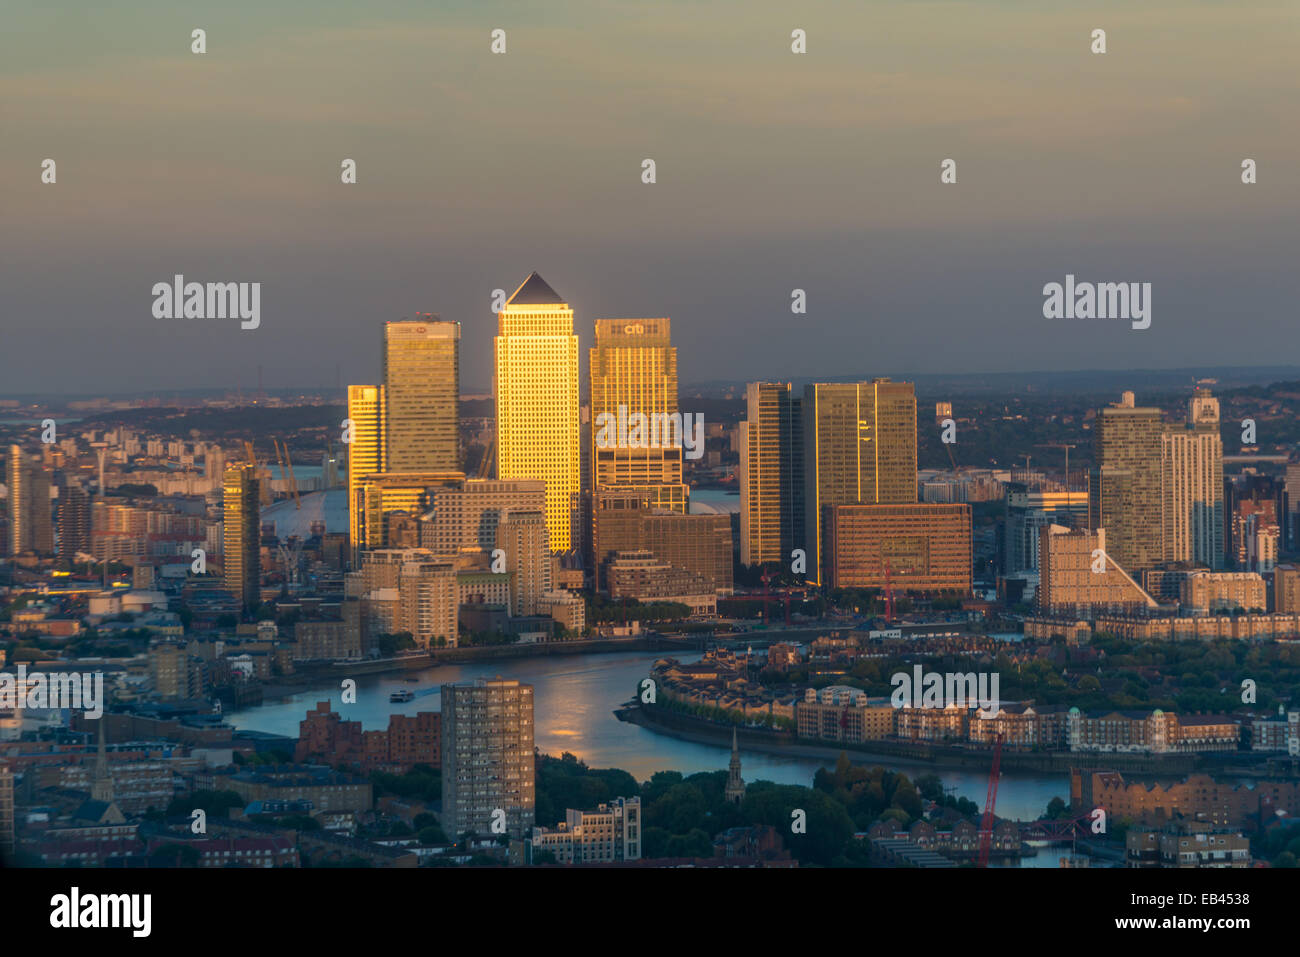 Canary Wharf, HSBC, Citigroup, Isle of Dogs, Pan Peninsula (1 Millharbour), River Thames London - Stock Image